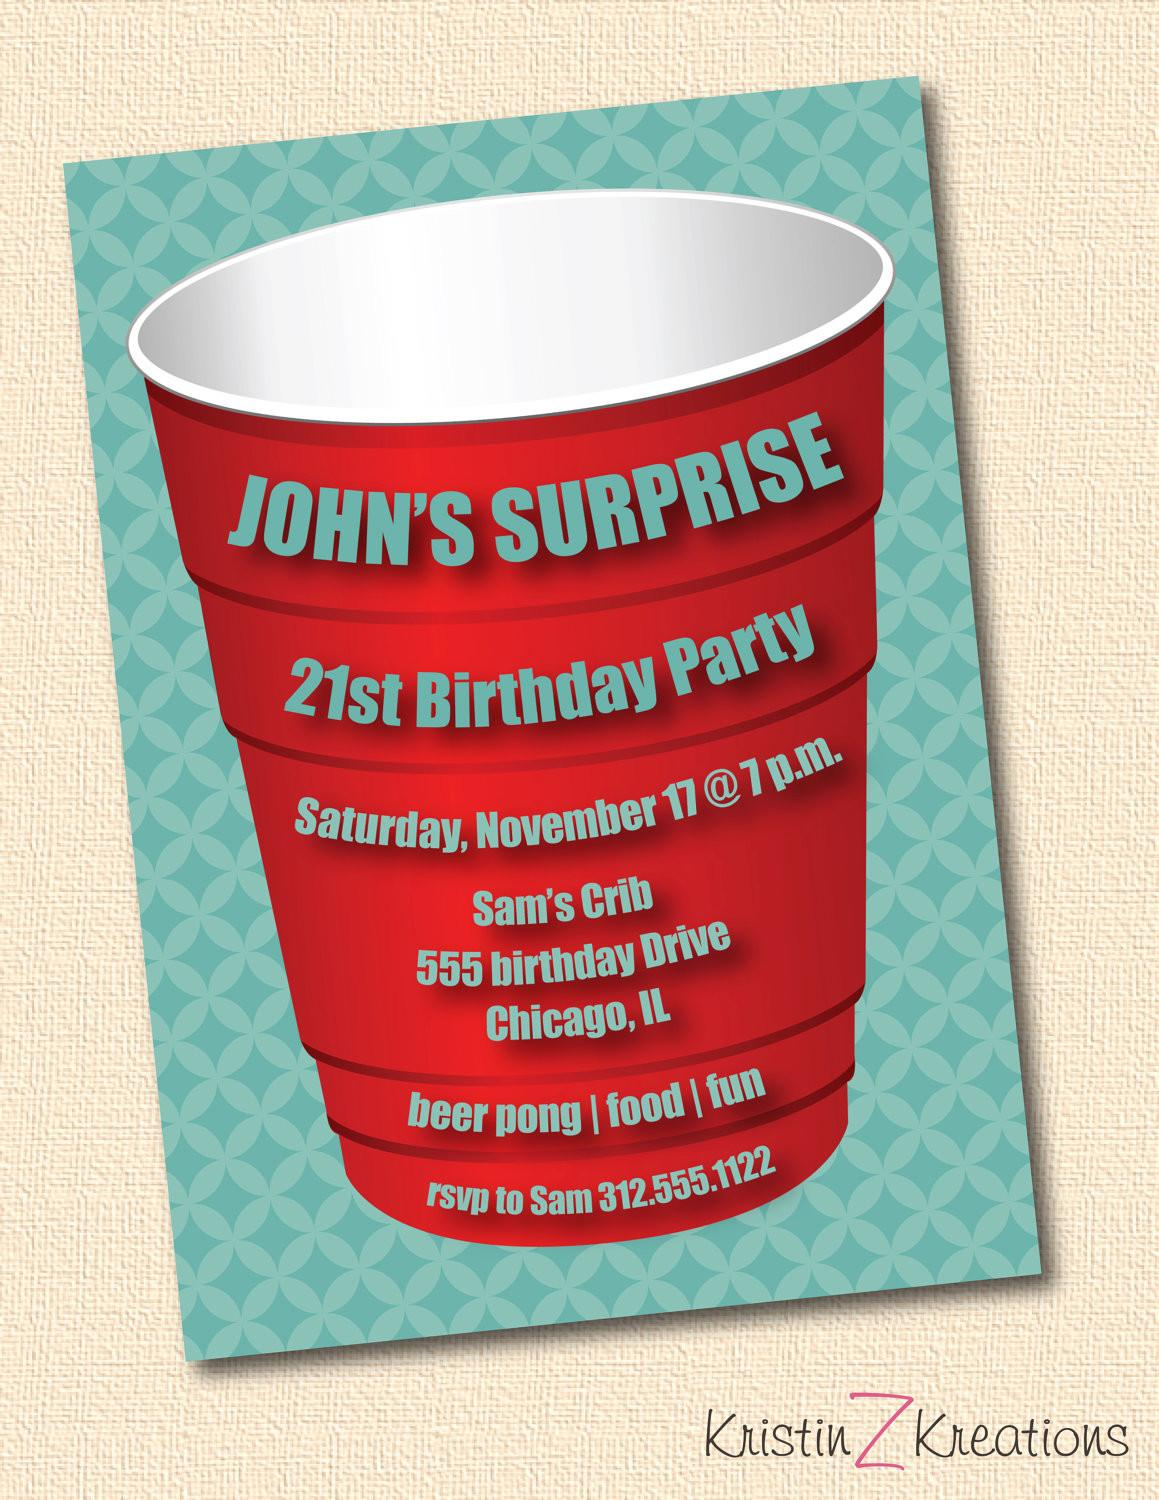 Red Solo Cup Party Invitation Custom Kristinzkreations